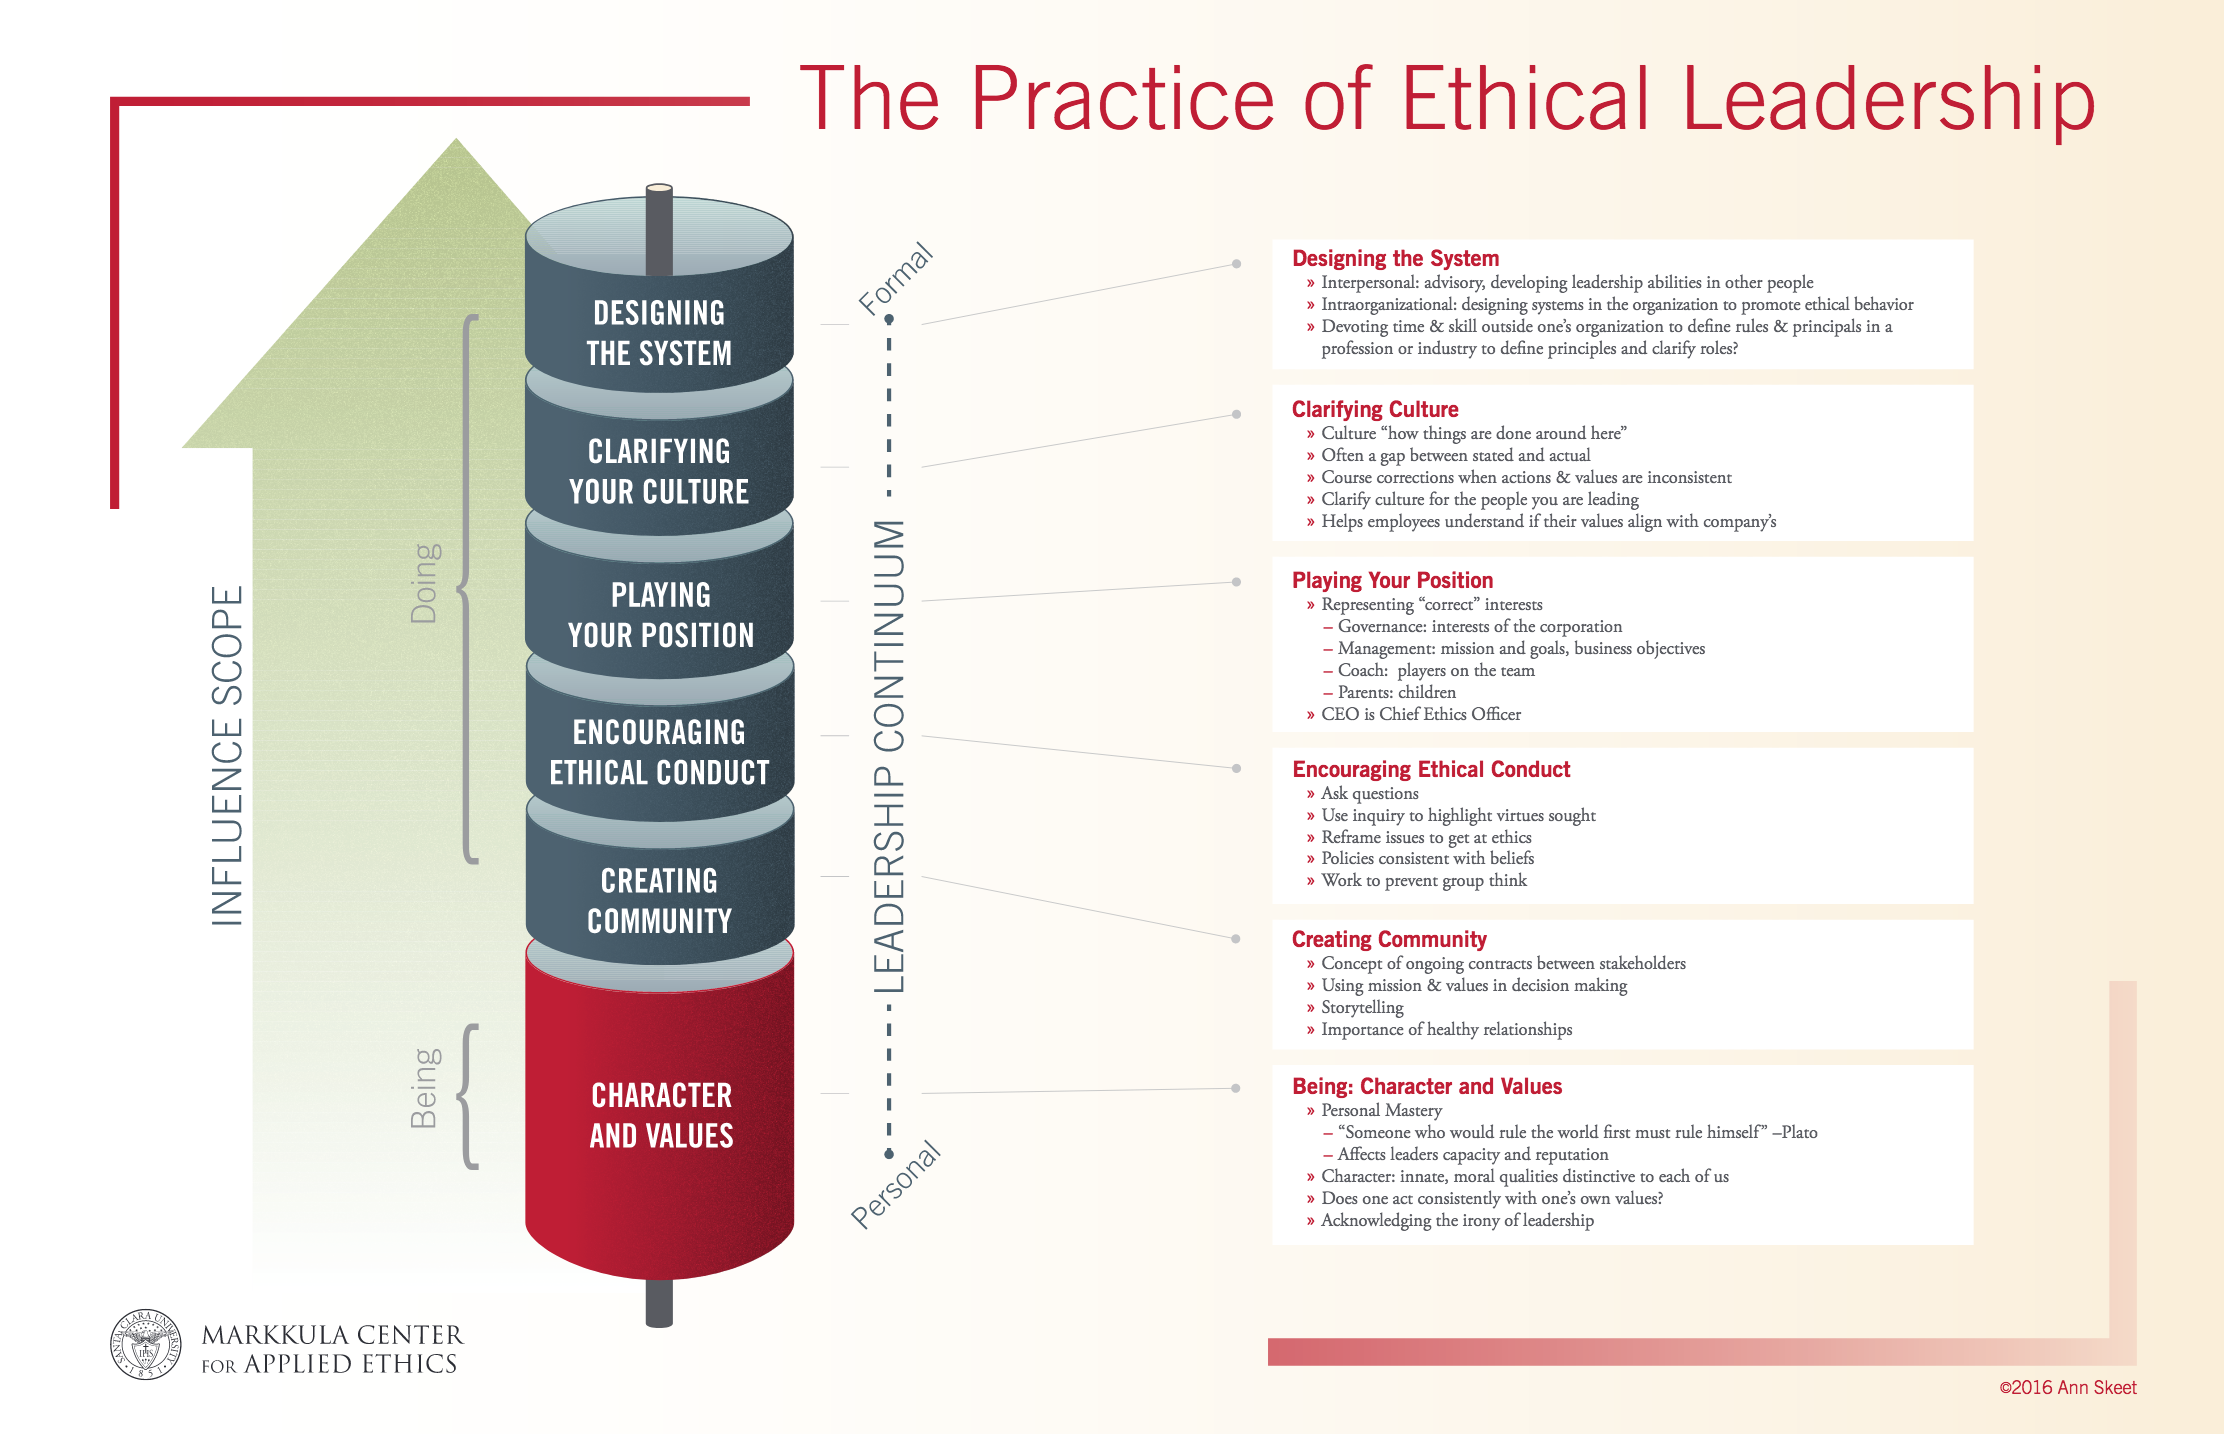 The Practice of Ethical Leadership - MARKKULA CENTER FOR APPLIED ETHICS